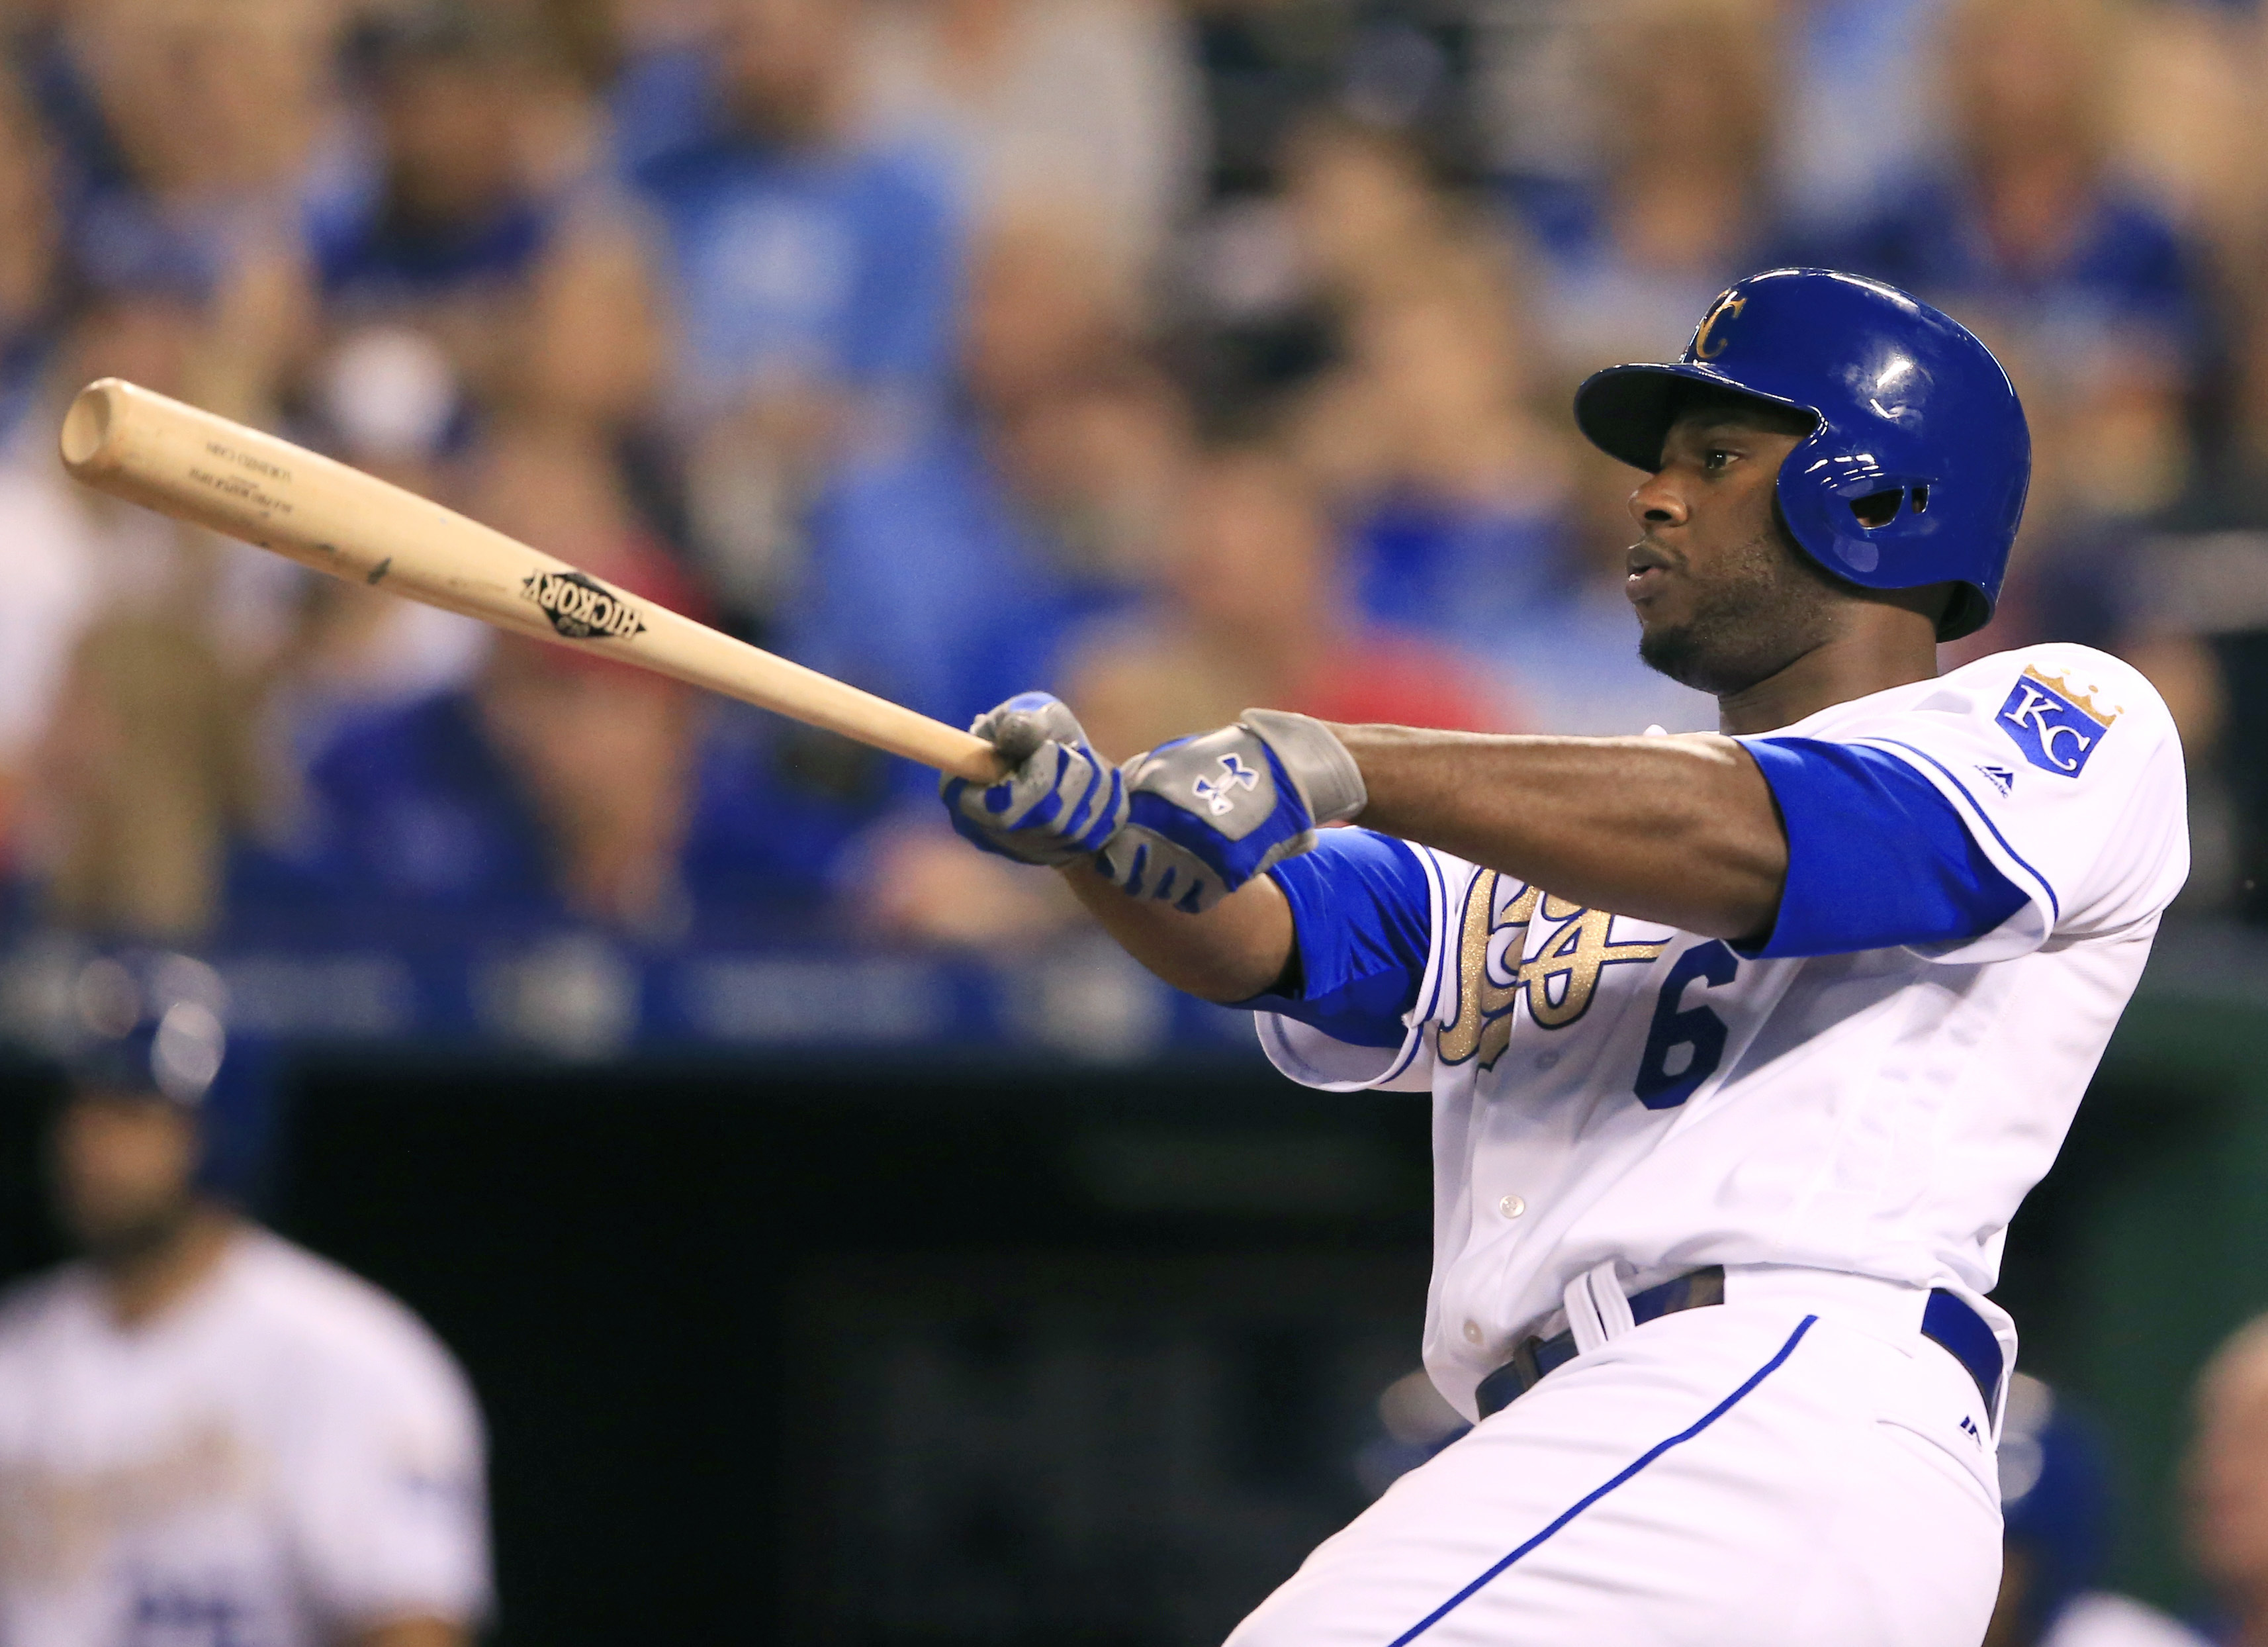 Kansas City Royals' Lorenzo Cain hits an RBI triple off Toronto Blue Jays starting pitcher Francisco Liriano during the fifth inning of a baseball game at Kauffman Stadium in Kansas City, Mo., Friday, Aug. 5, 2016. (AP Photo/Orlin Wagner)